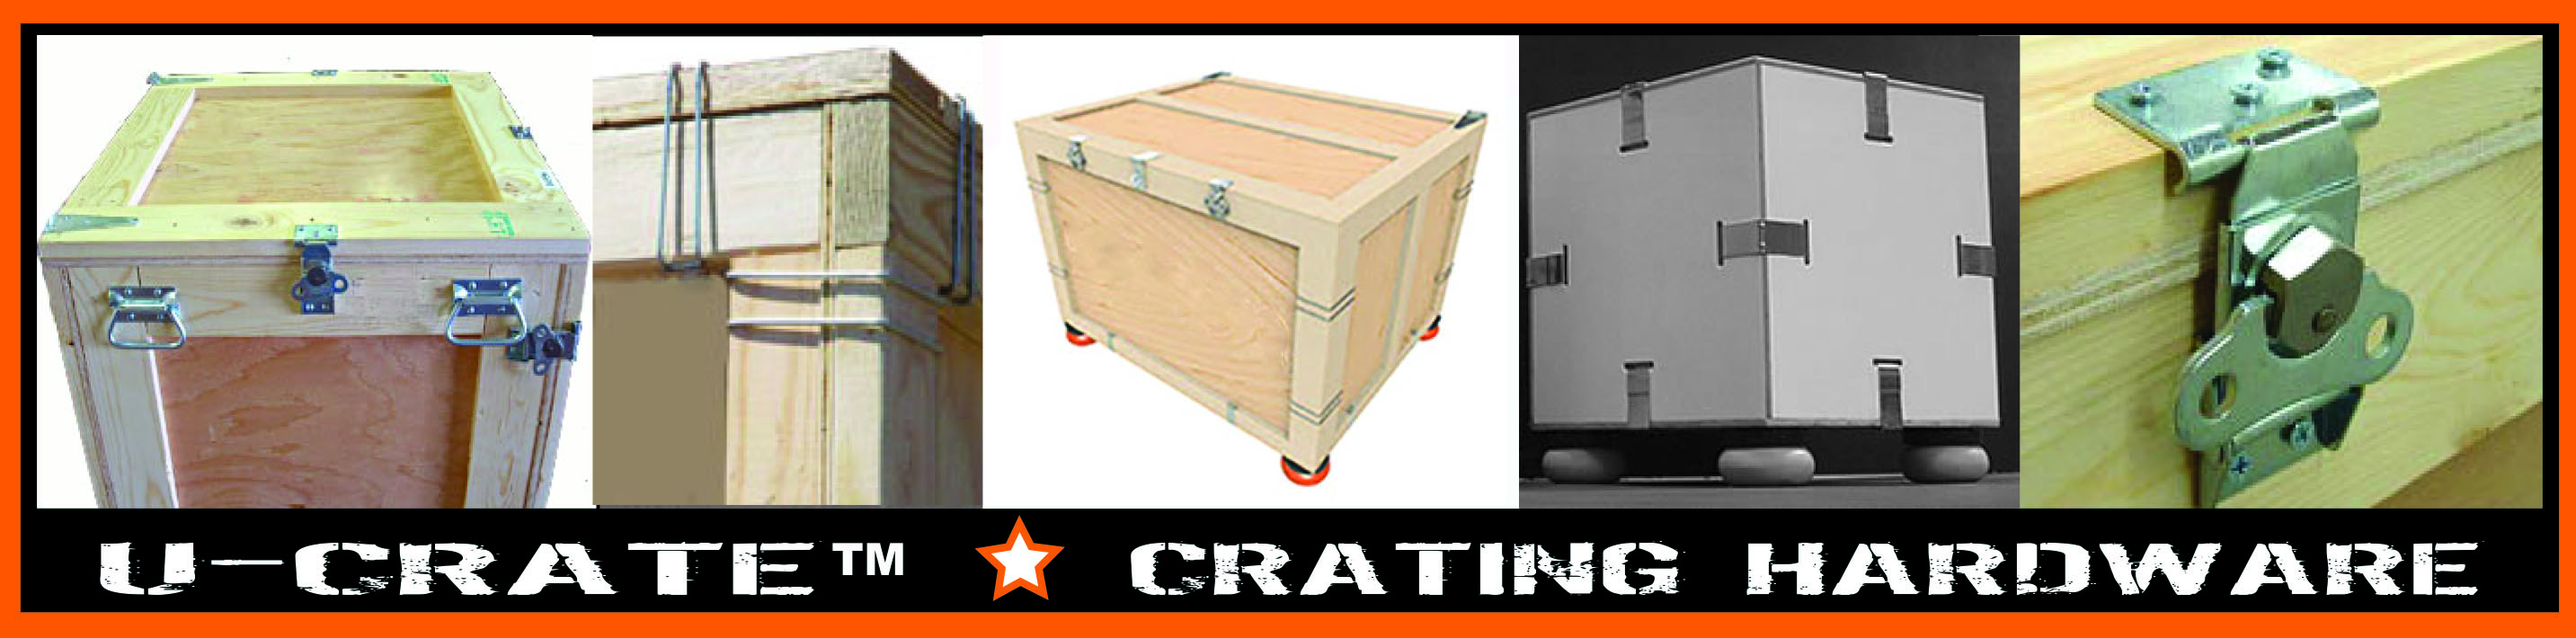 banner-crating-products.jpg